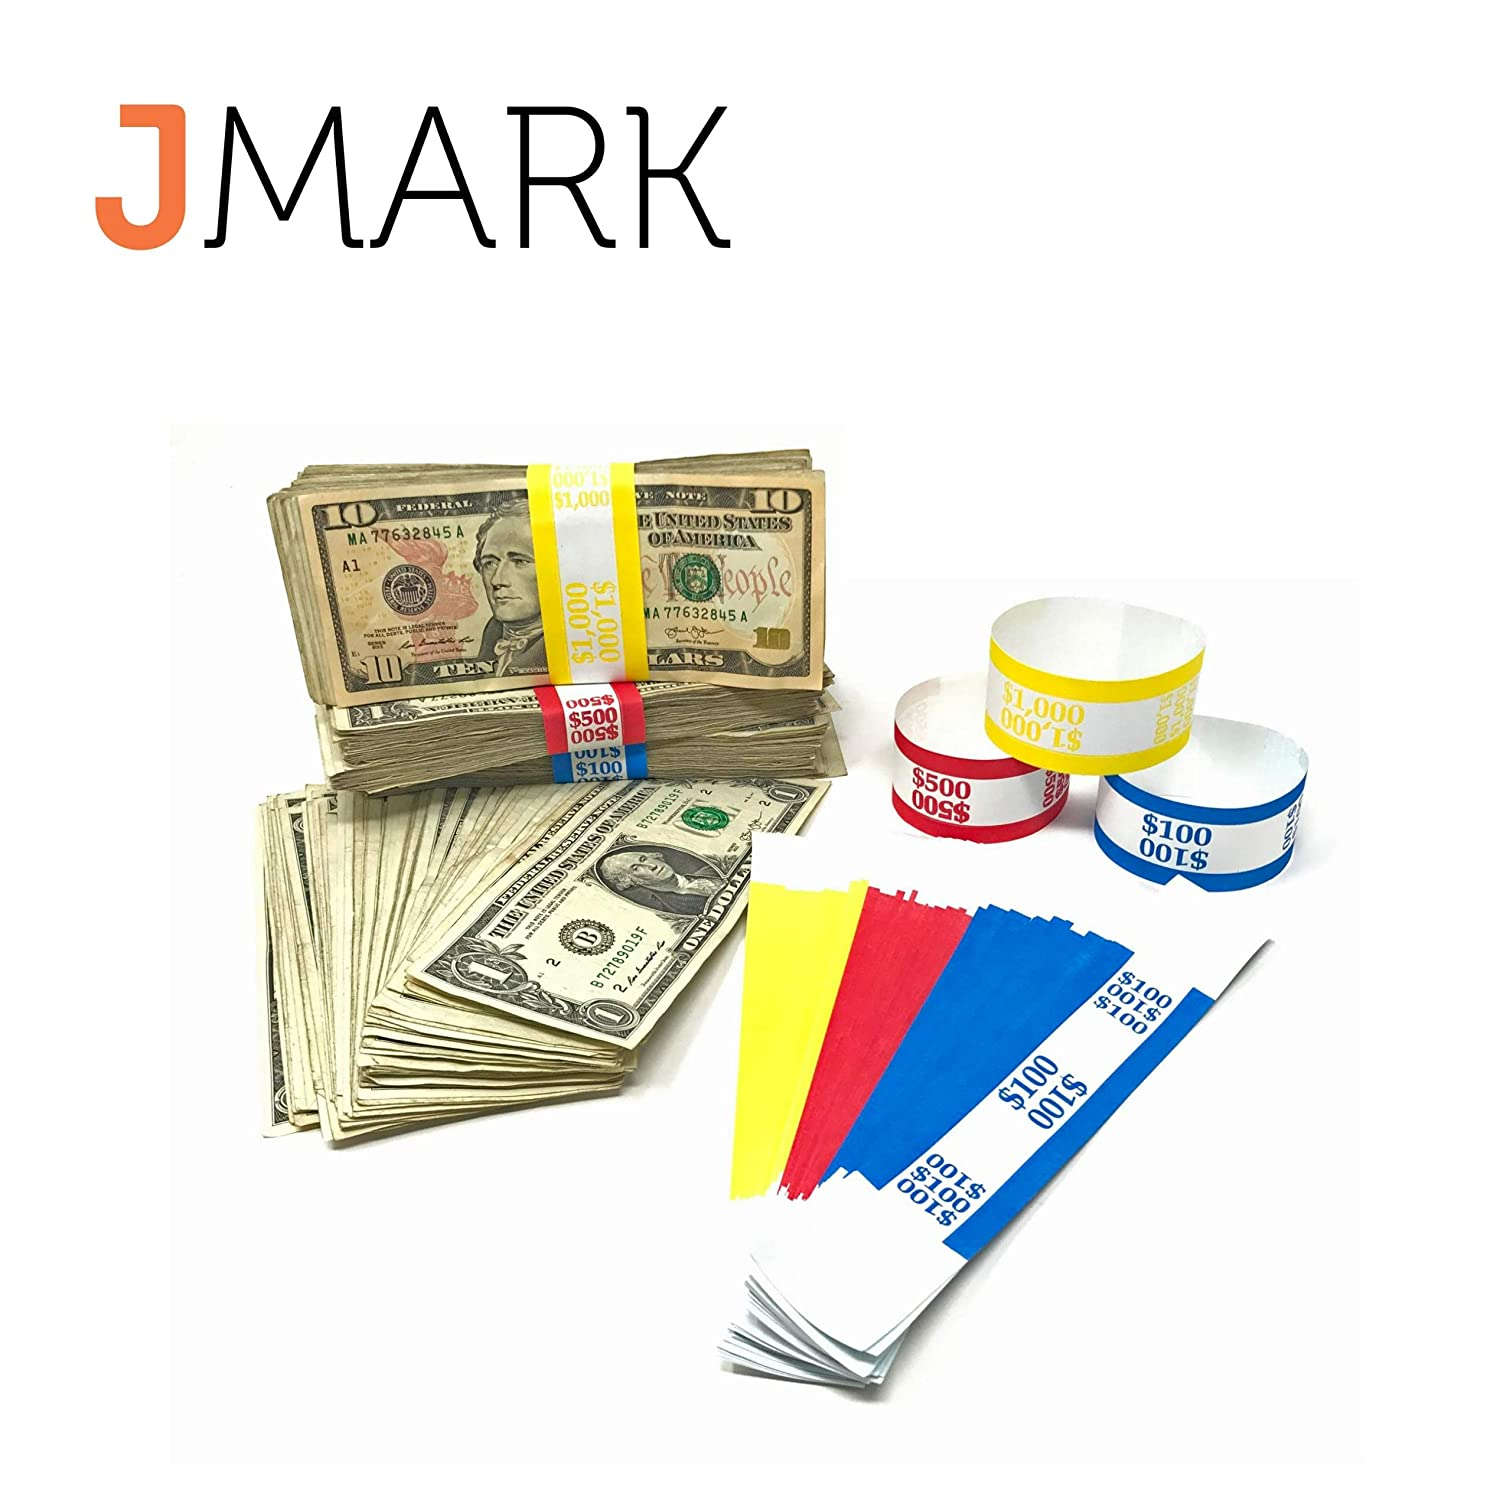 7.5 x 1.25 inches Pack of 3000 Self-Adhesive Assorted Money Wrappers for Bills Color Coded Wraps Meets ABA Standards Made in USA Money Bands Currency Sleeves Straps Counter Recyclable Kraft Pap